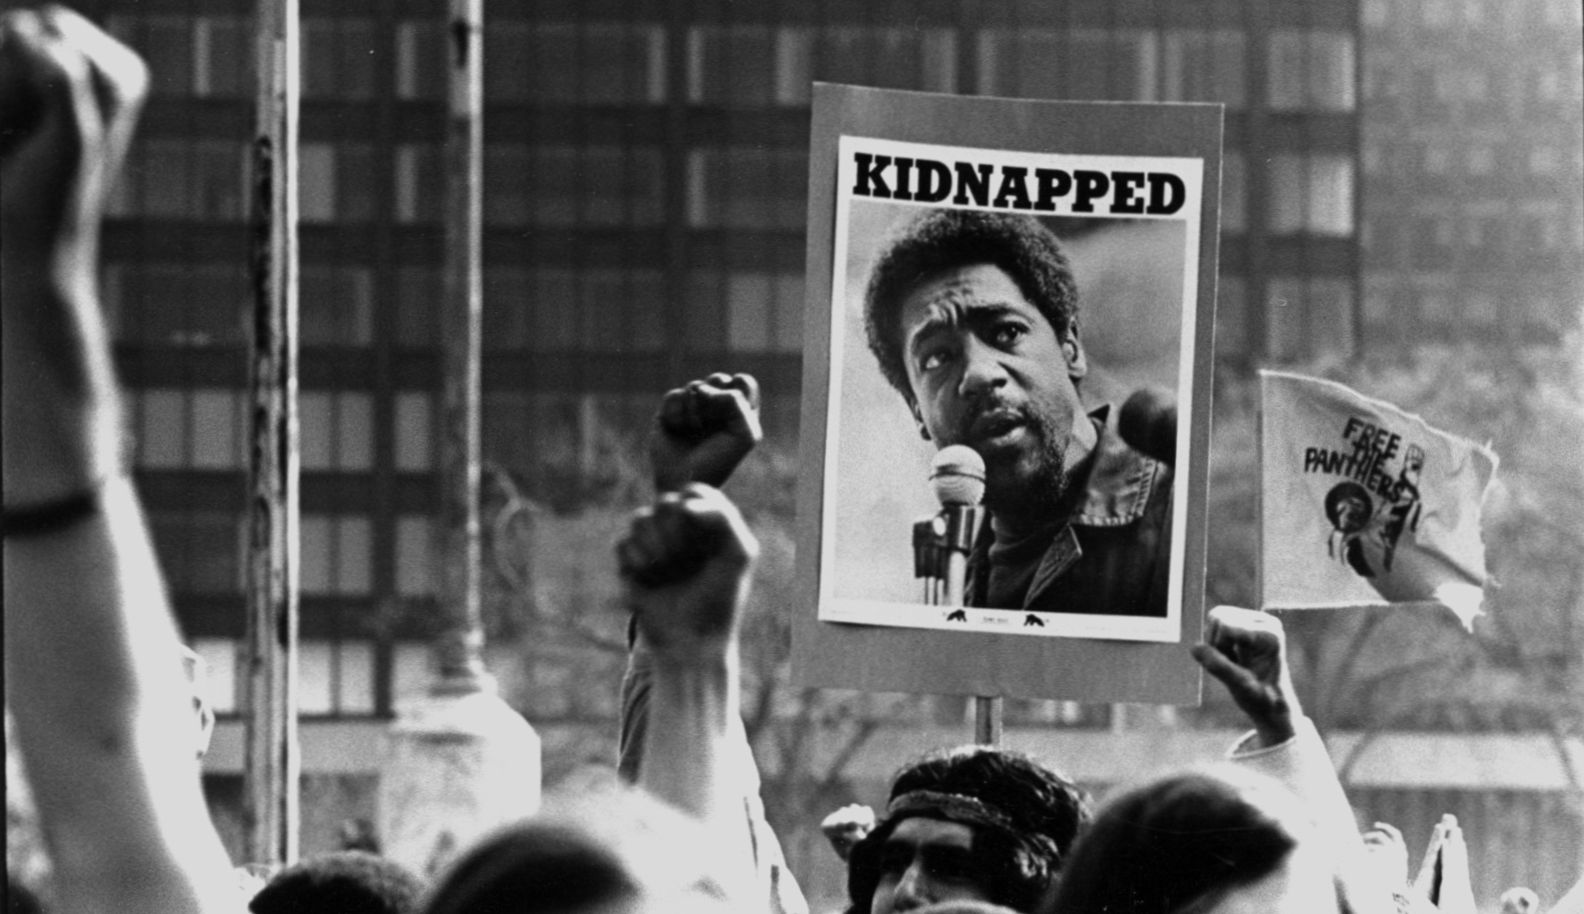 Protesters the New Haven Green demonstrate against the trial of Black Panther co-founder Bobby Seale. Photo by Stephen West, Yale University Library.